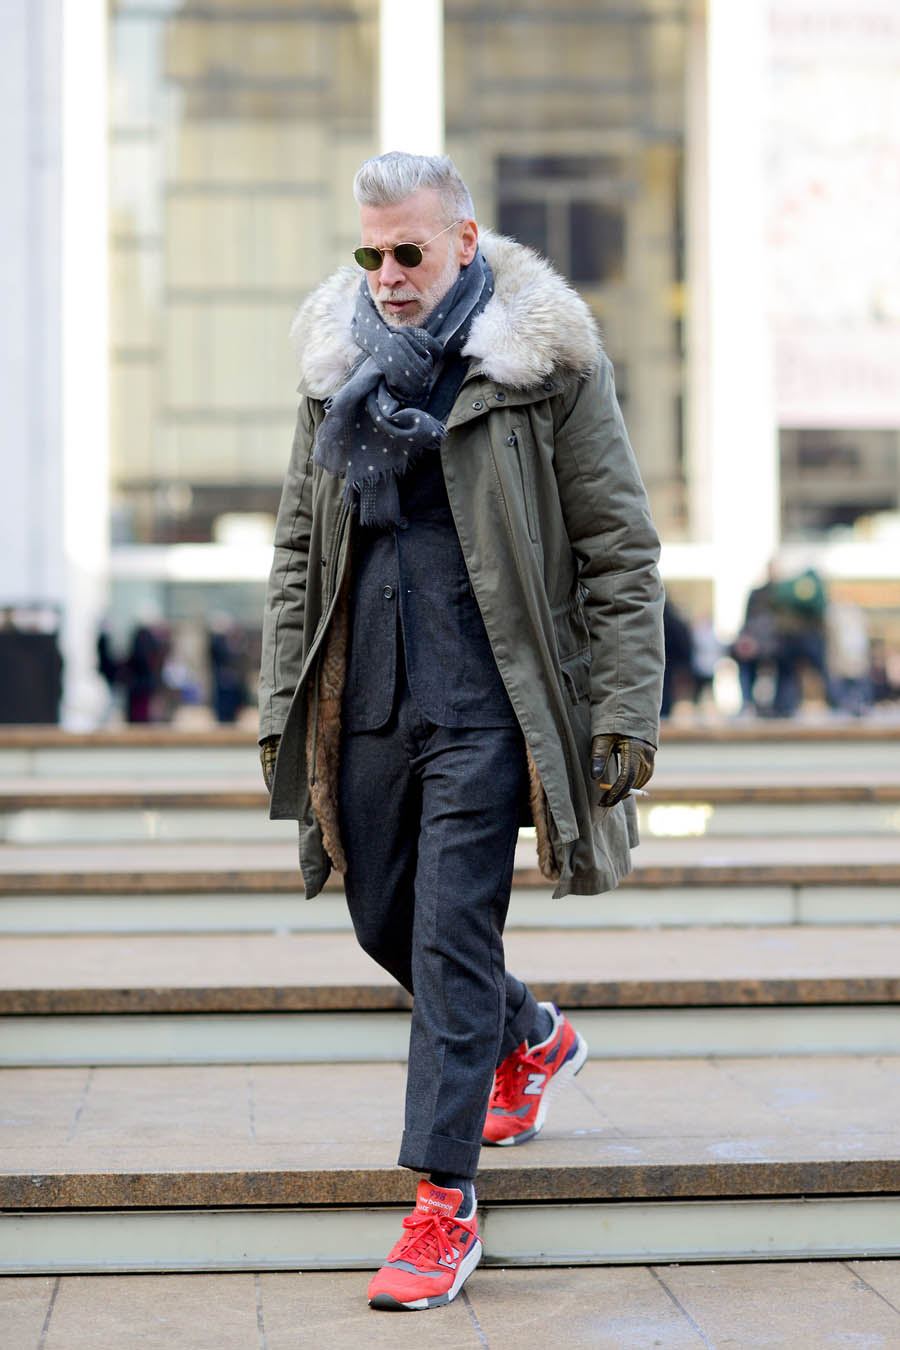 Nick Wooster Stairwalker red new balance & fur coat